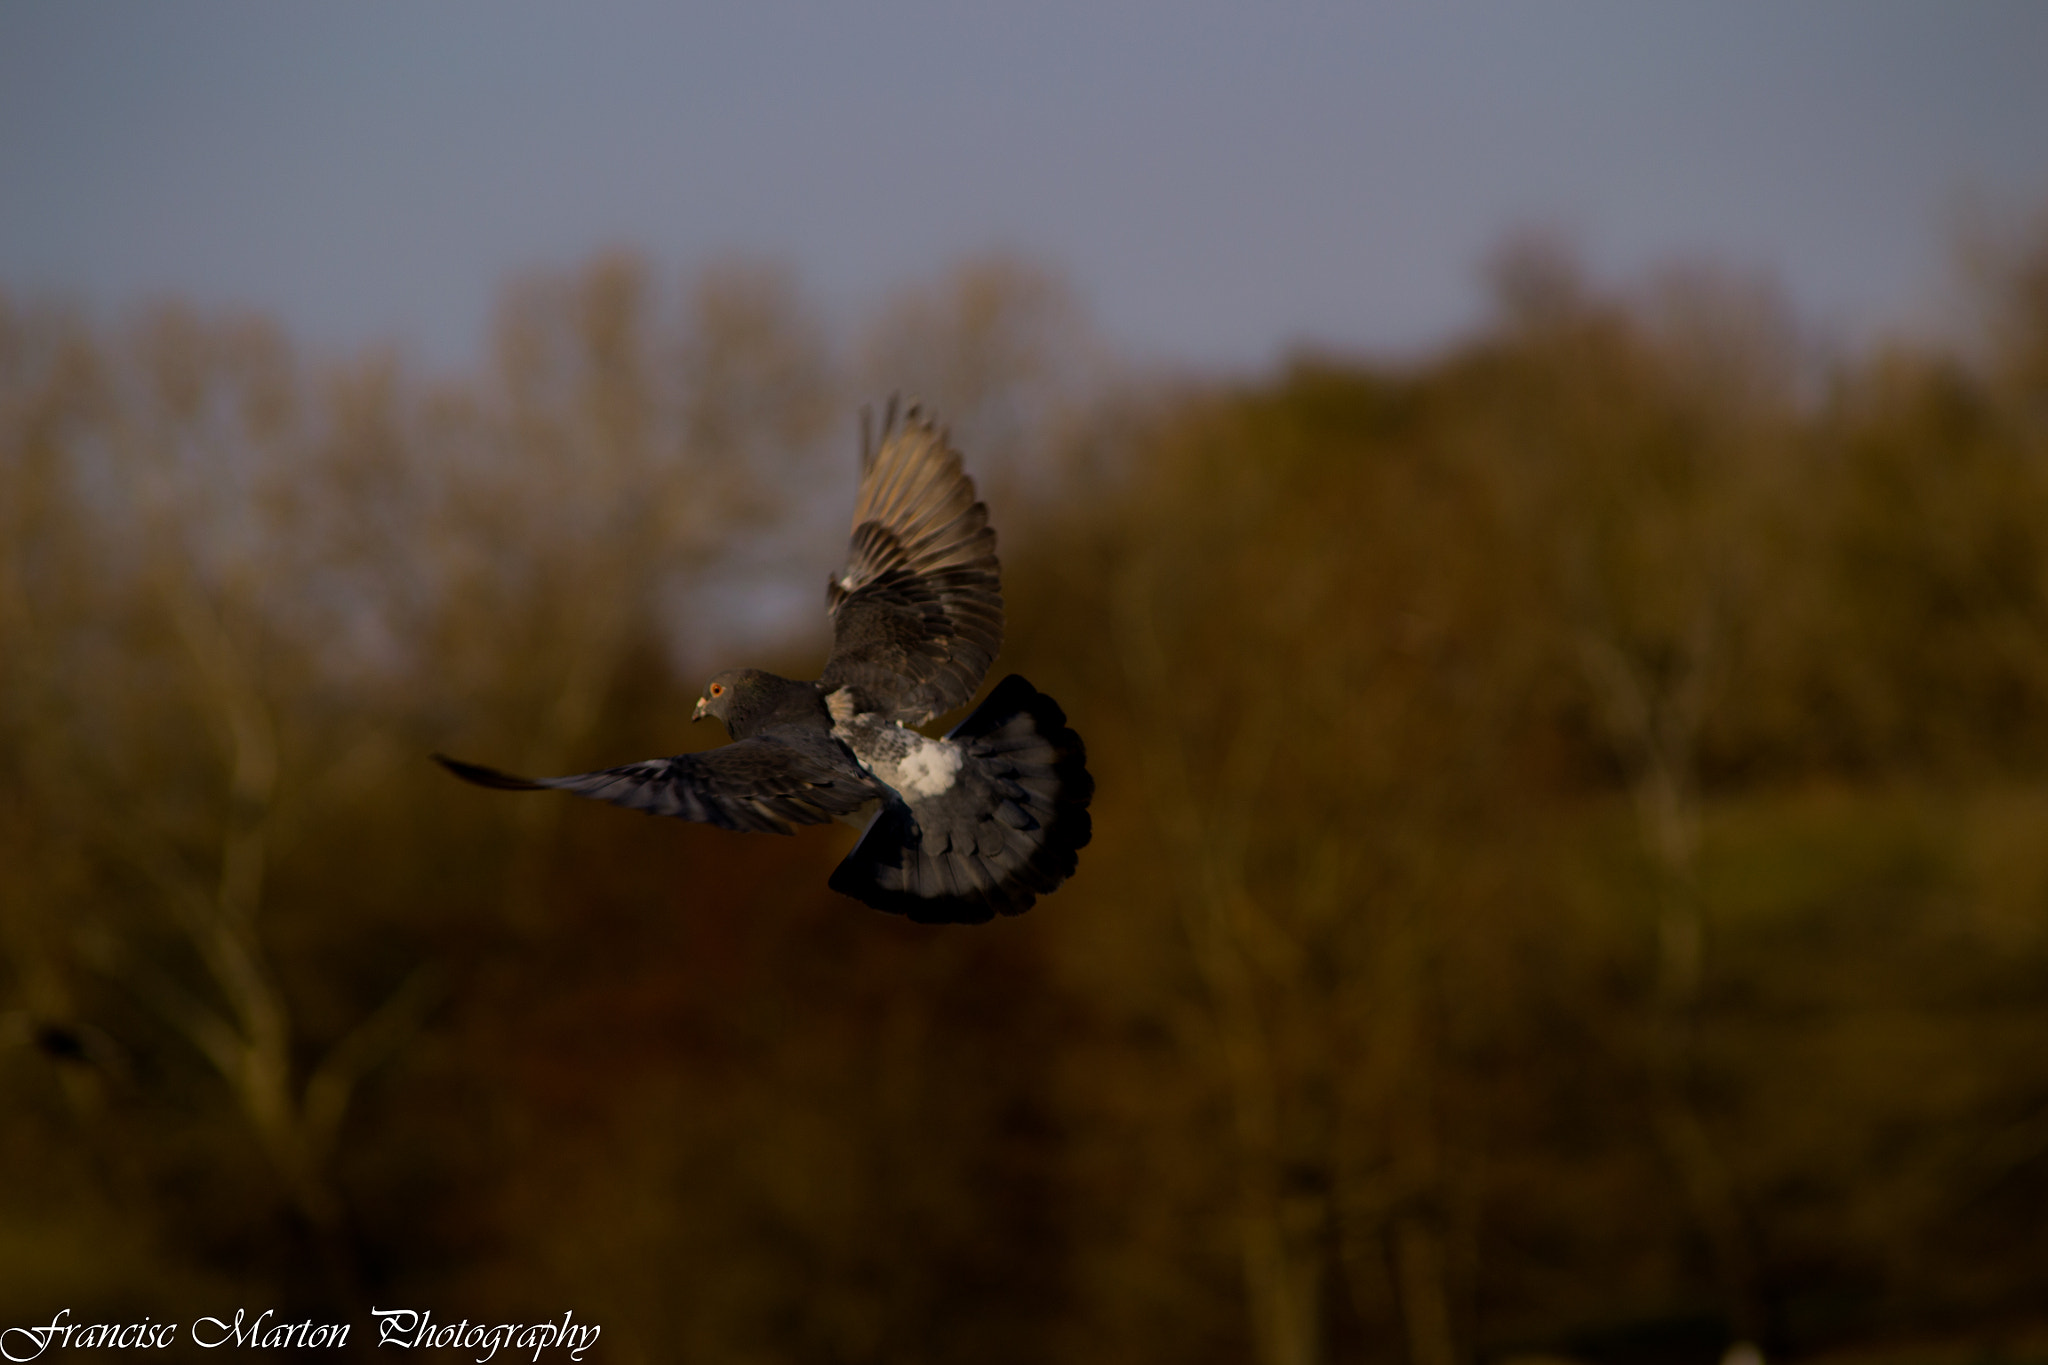 Photograph Pigeon by Francisc Marton on 500px